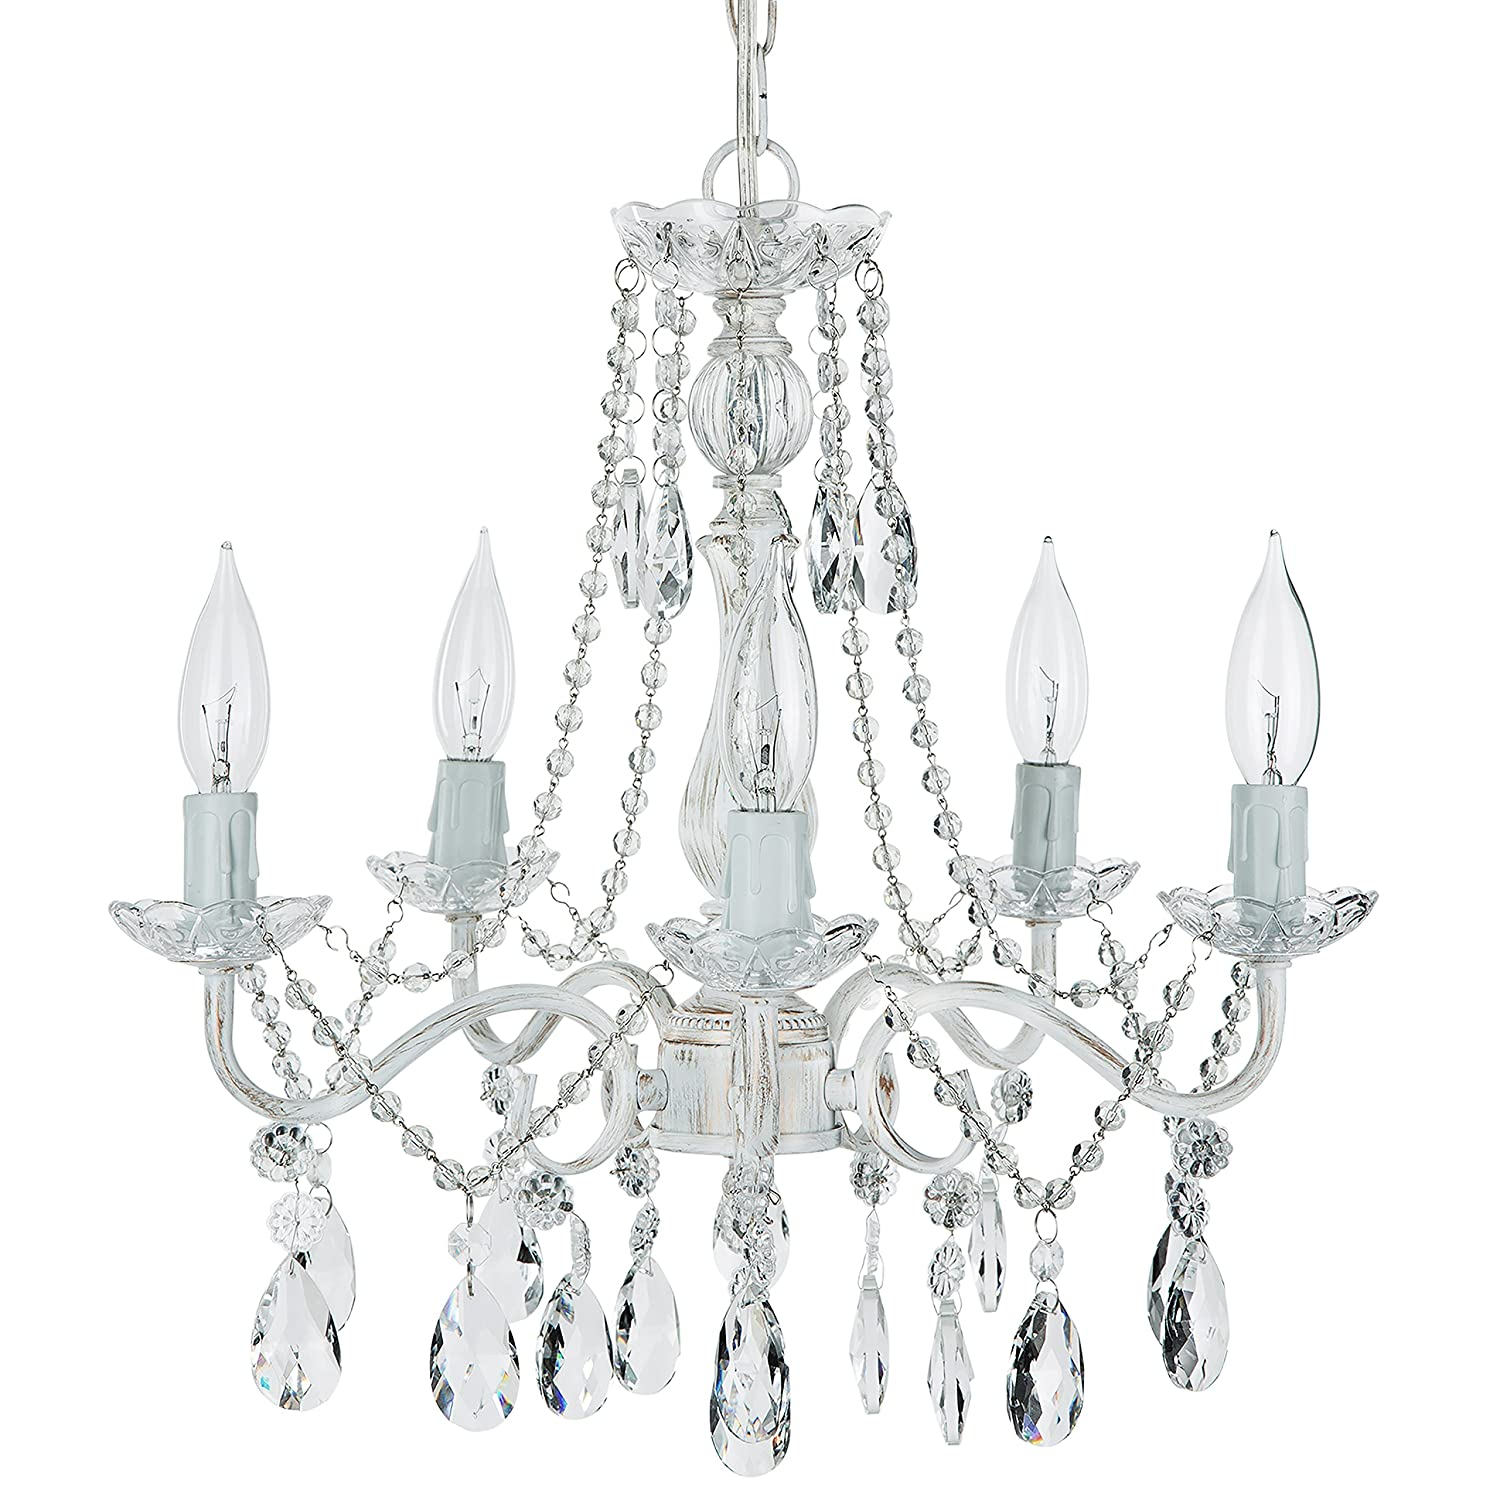 Elizabeth Antique White Washed Crystal Chandelier, Mini Swag Plug-In 5  Light Glass Pendant Wrought Iron Ceiling Lighting Fixture Lamp - -  Amazon.com - Elizabeth Antique White Washed Crystal Chandelier, Mini Swag Plug-In